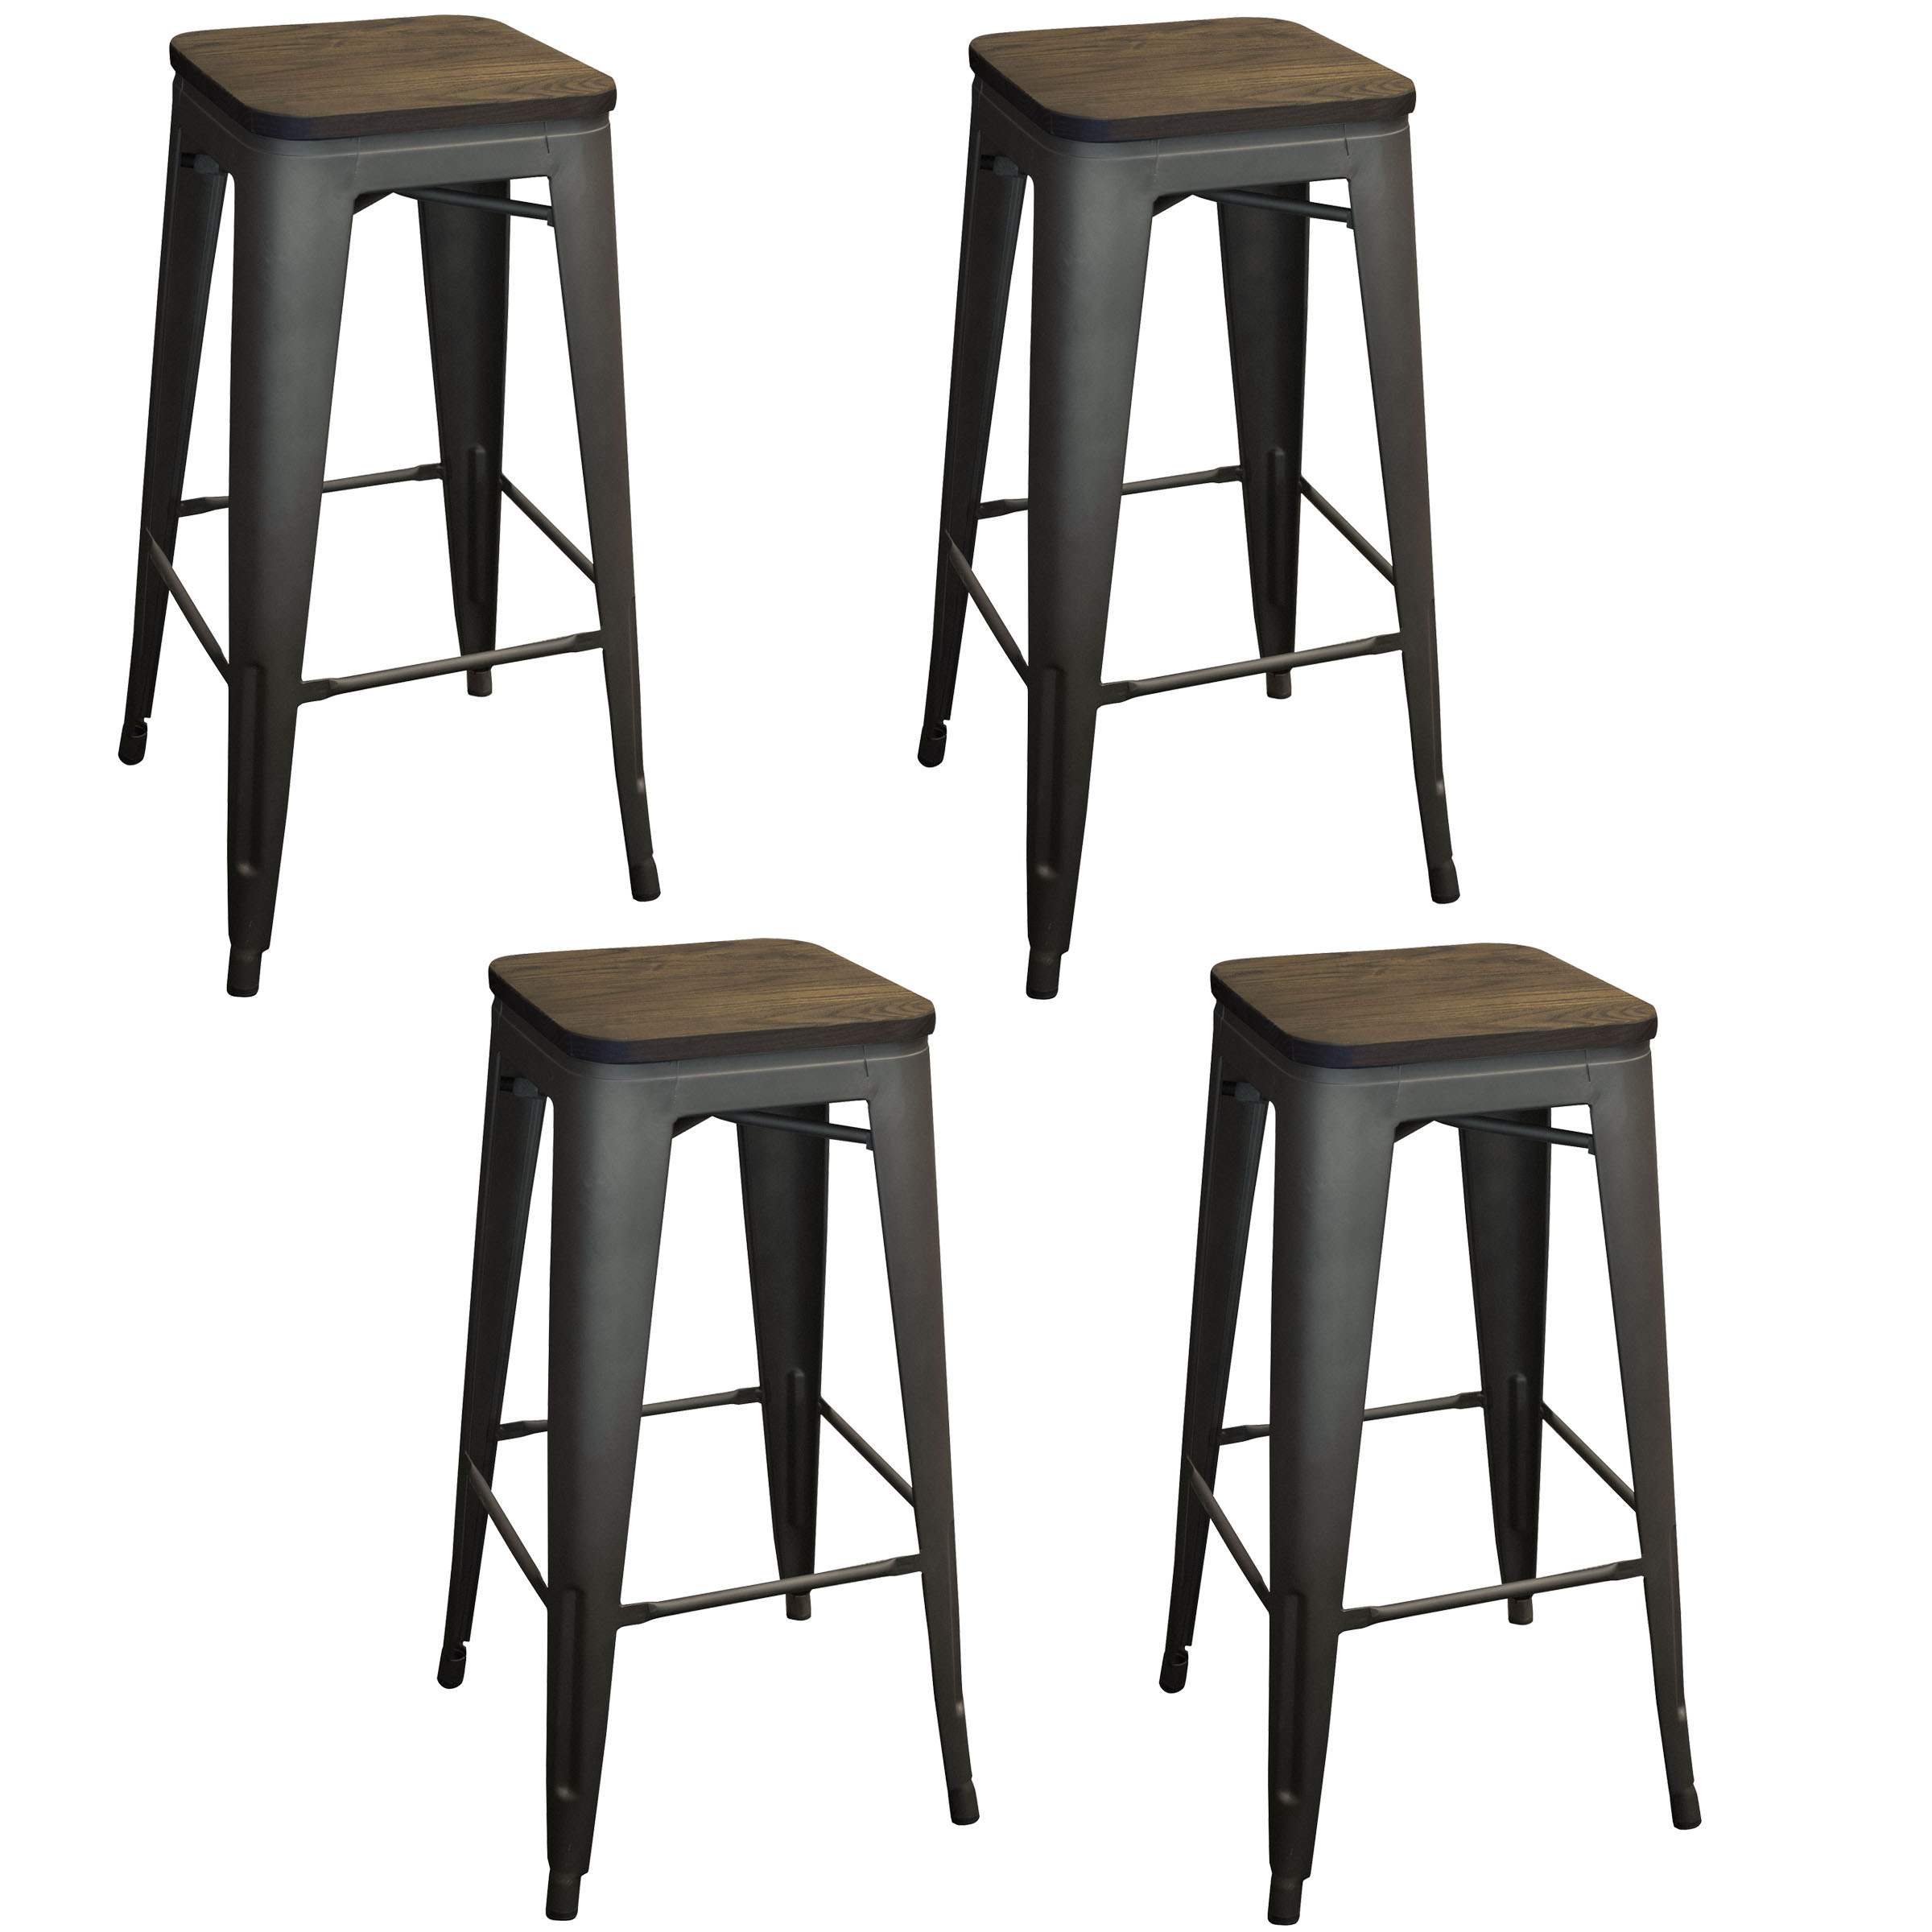 Cool Details About Amerihome 30Inch Loft Rustic Gunmetal Metal Bar Stool With Wood Seat 4 Piece Theyellowbook Wood Chair Design Ideas Theyellowbookinfo